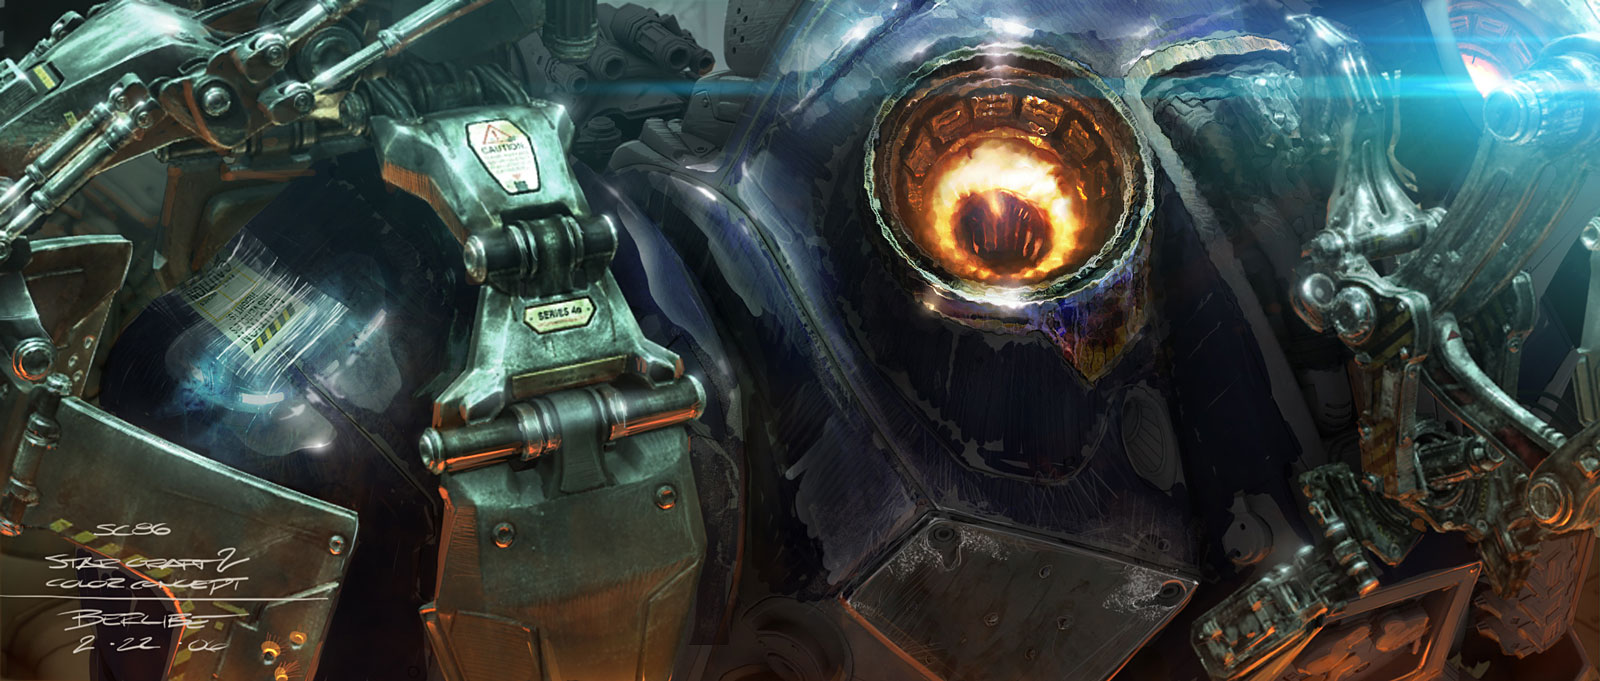 Artwork de Starcraft 2.